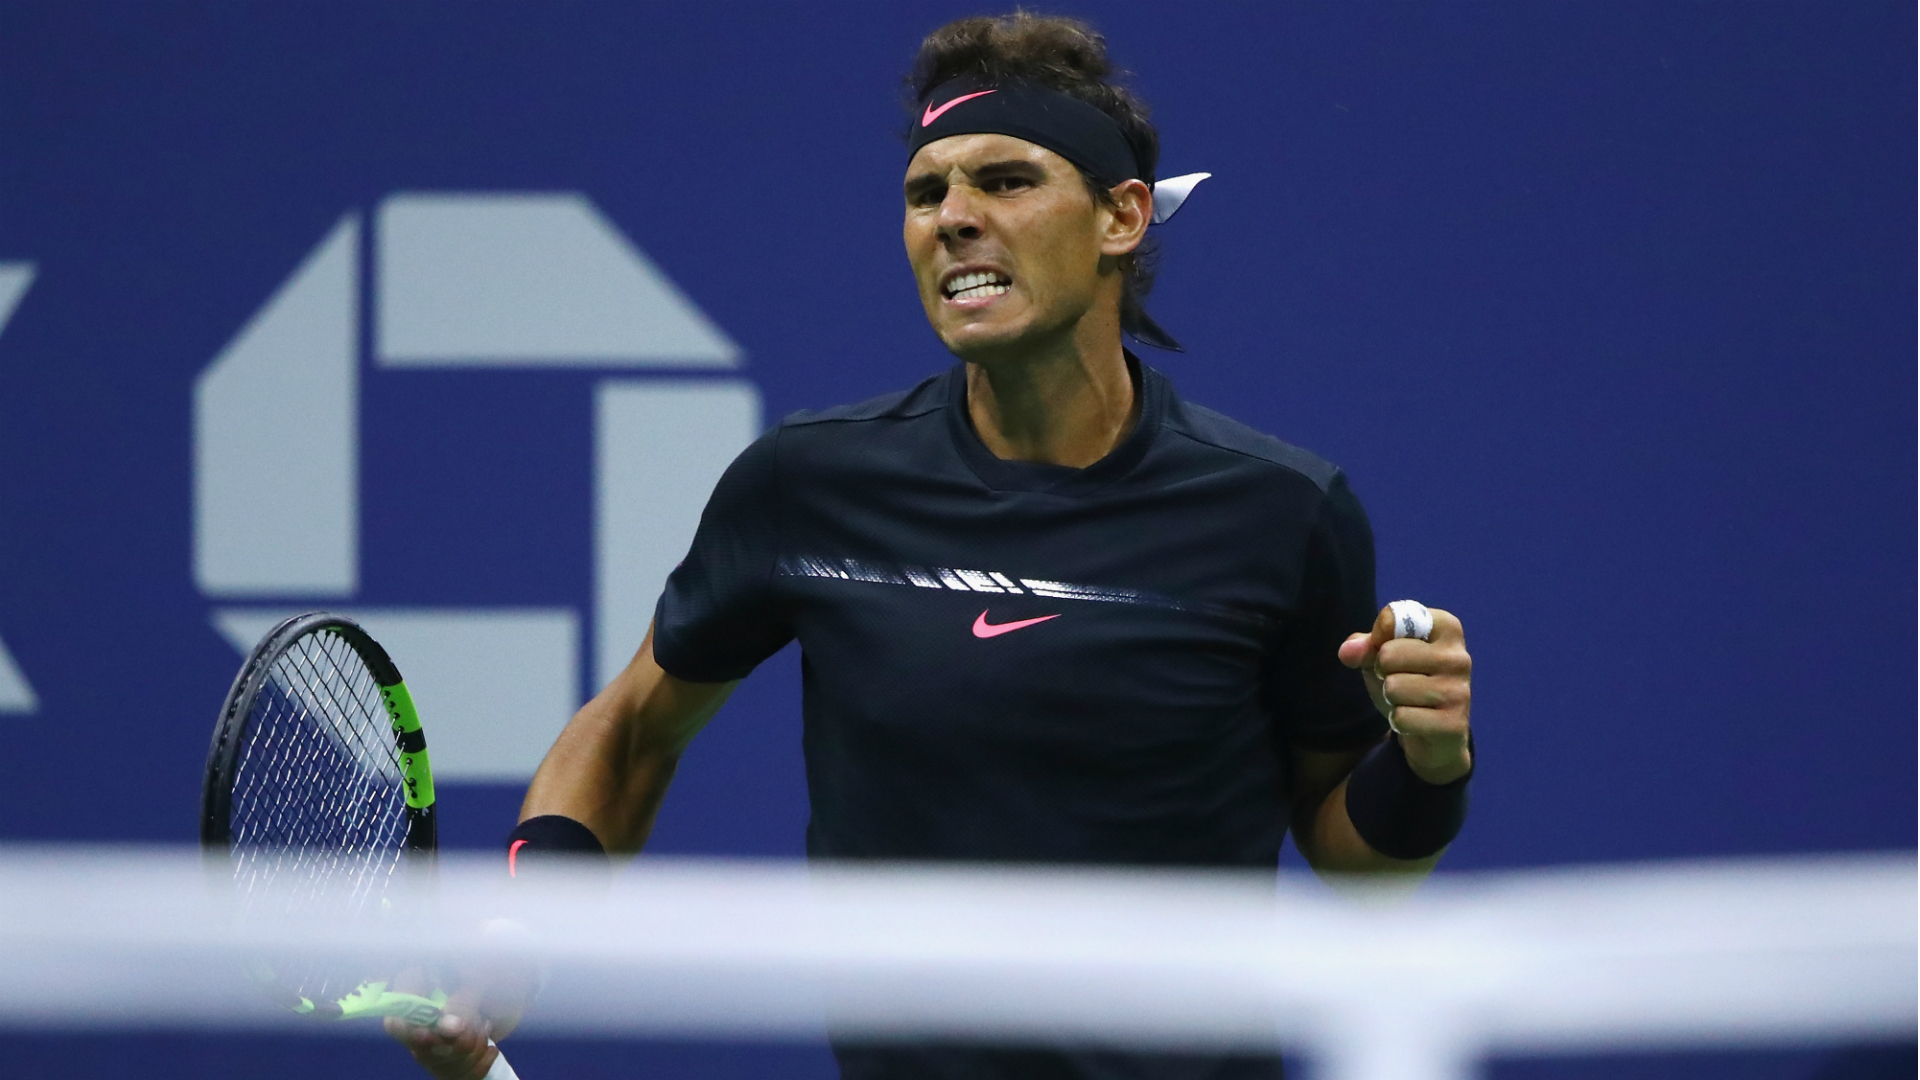 Rafael Nadal powers into U.S. Open final after blitzing Juan Martin del Potro